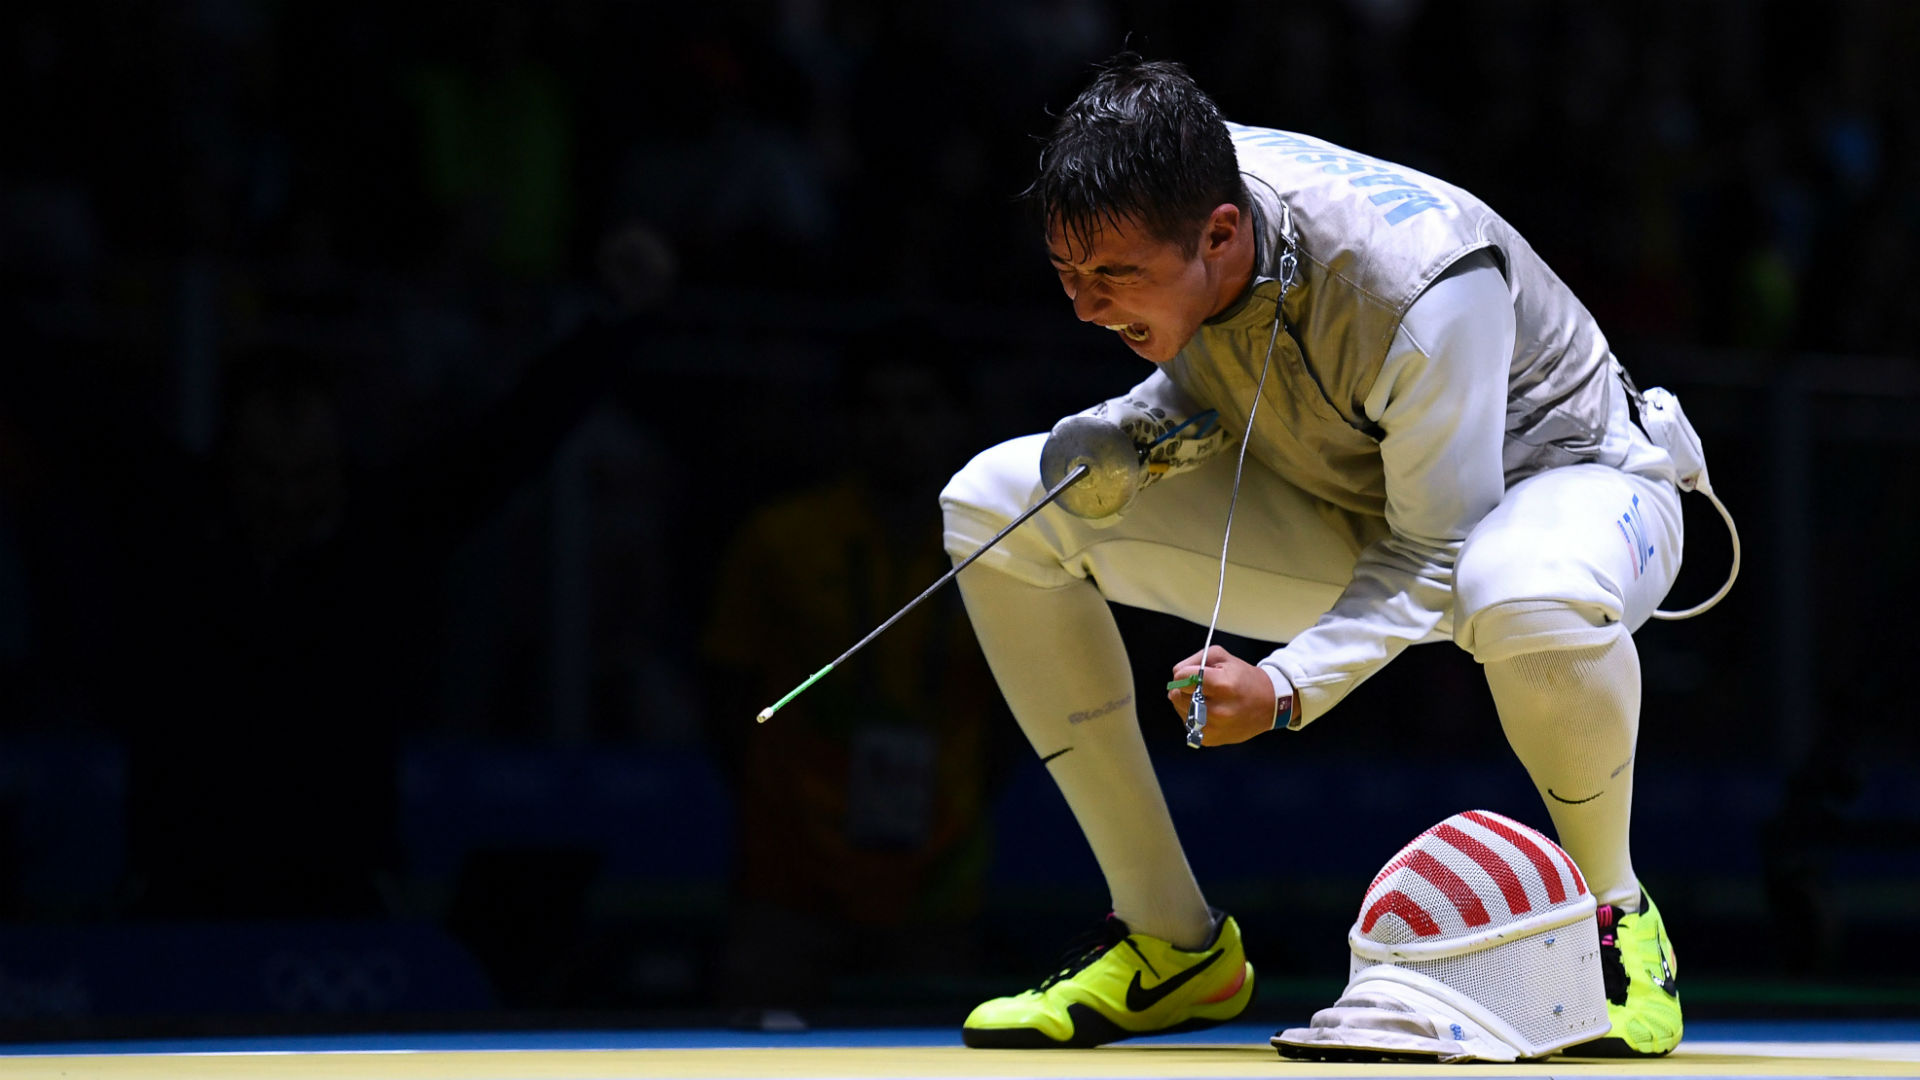 Rio Olympics 2016 Alex Massialas Wins First Fencing Medal